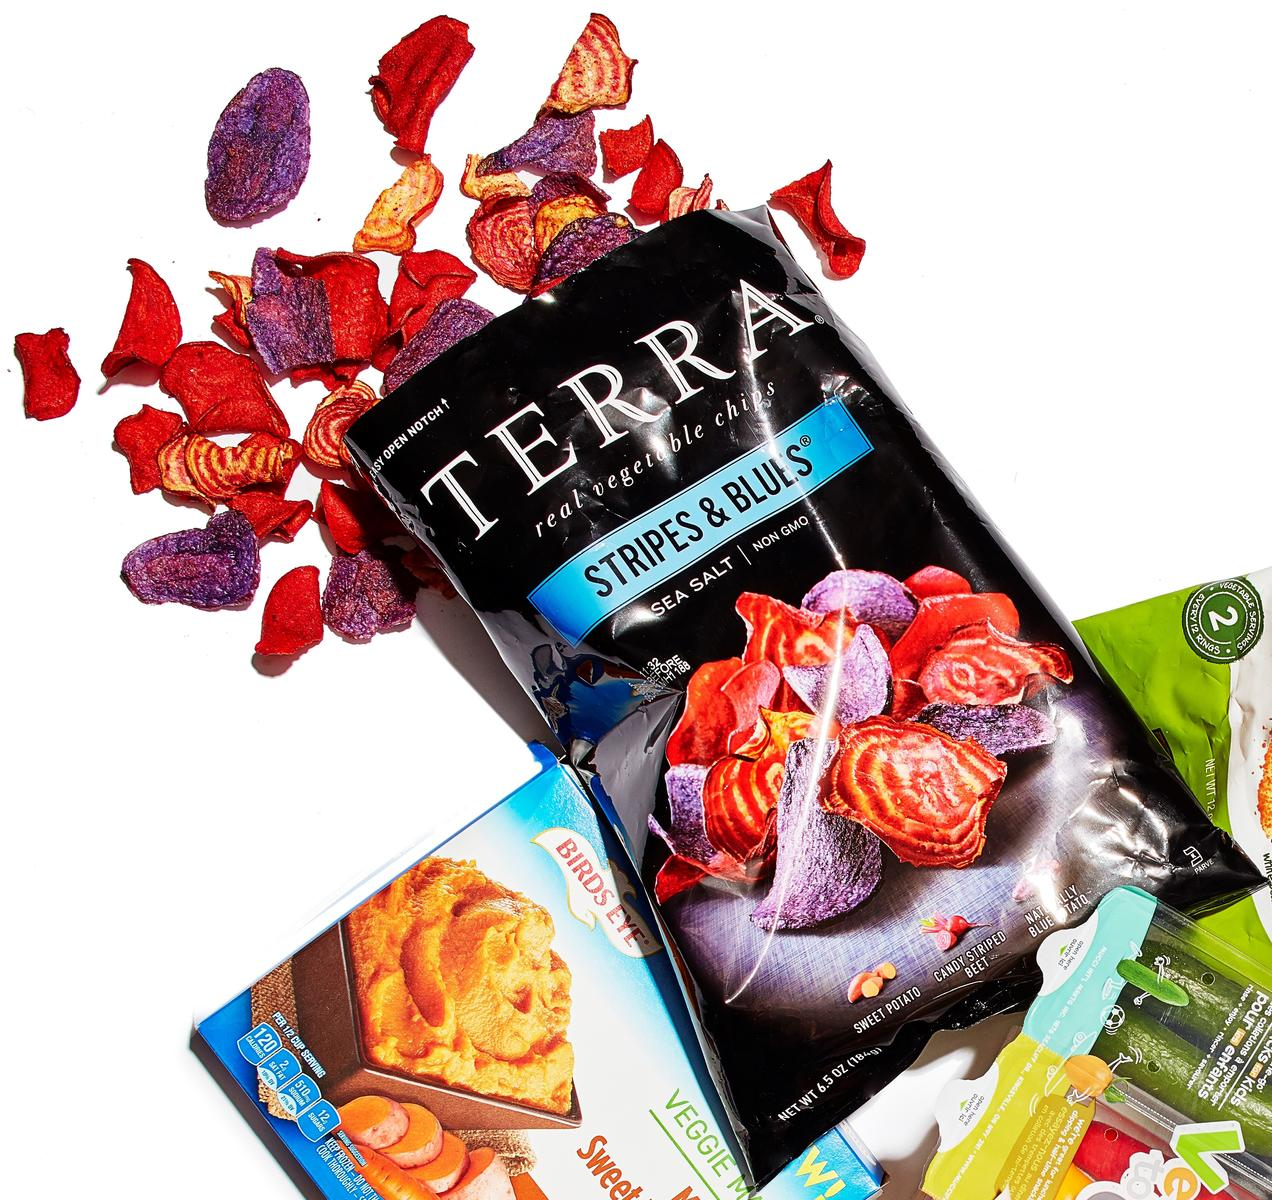 Packaged Finds Beets as Treats